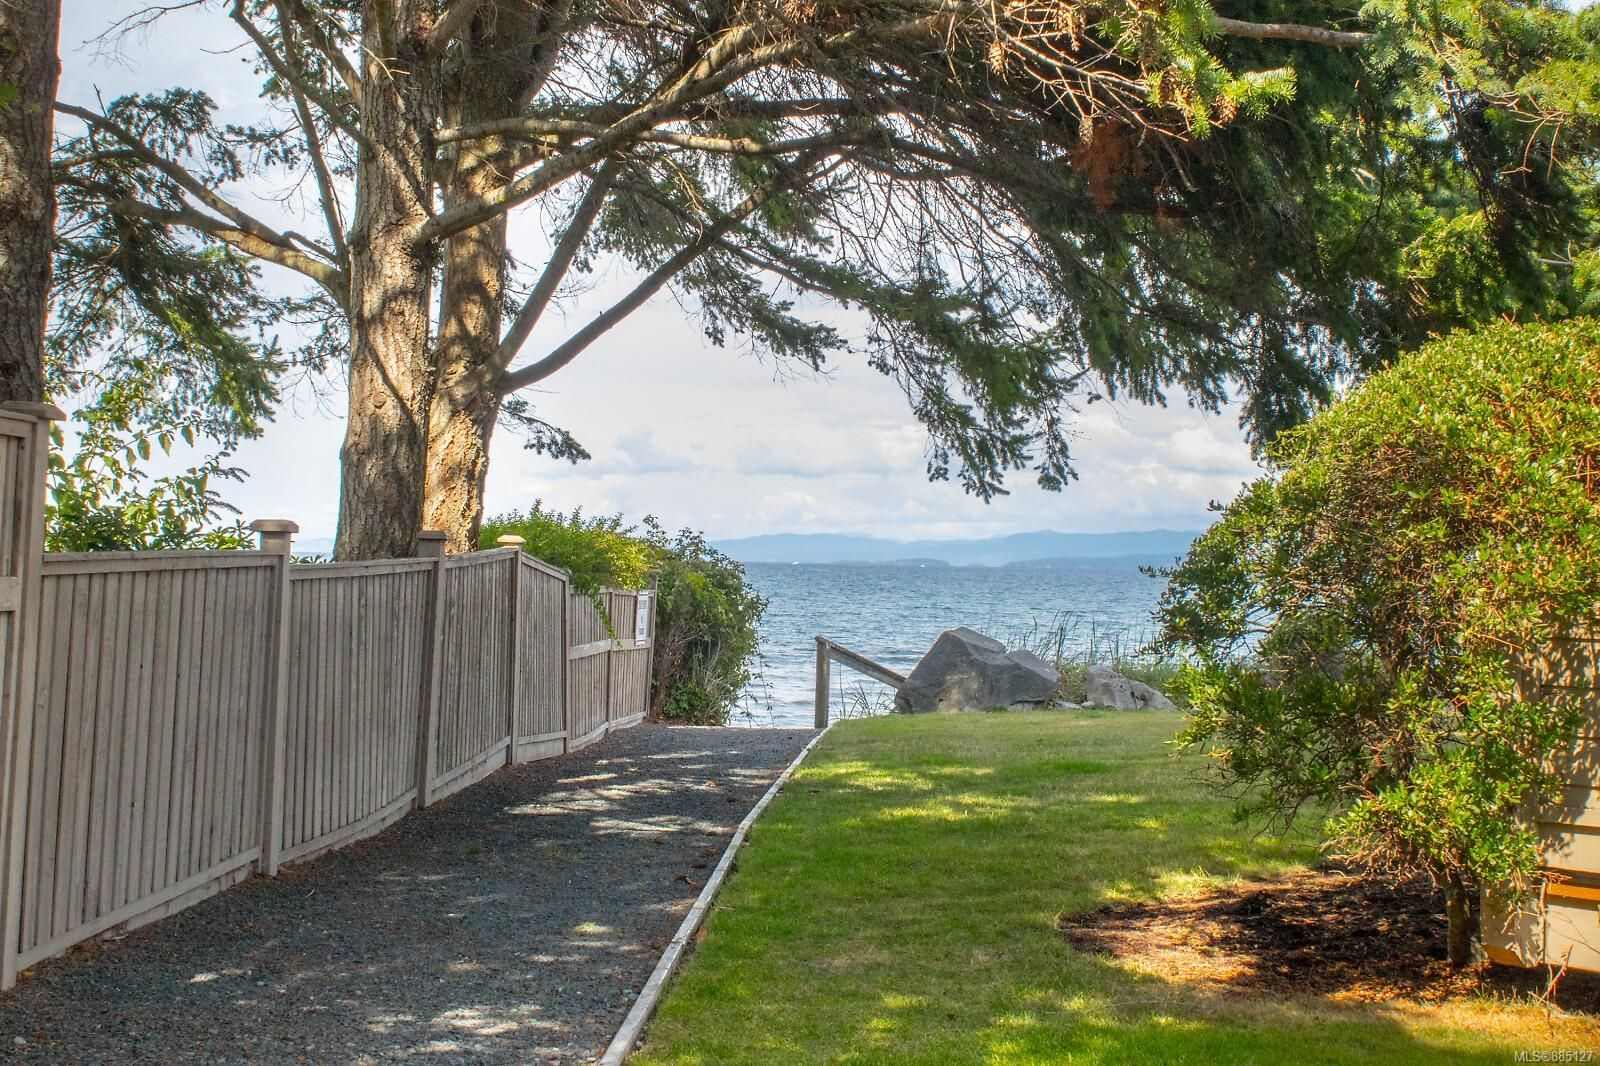 Photo 14: Photos: 26 529 Johnstone Rd in : PQ French Creek Row/Townhouse for sale (Parksville/Qualicum)  : MLS®# 885127